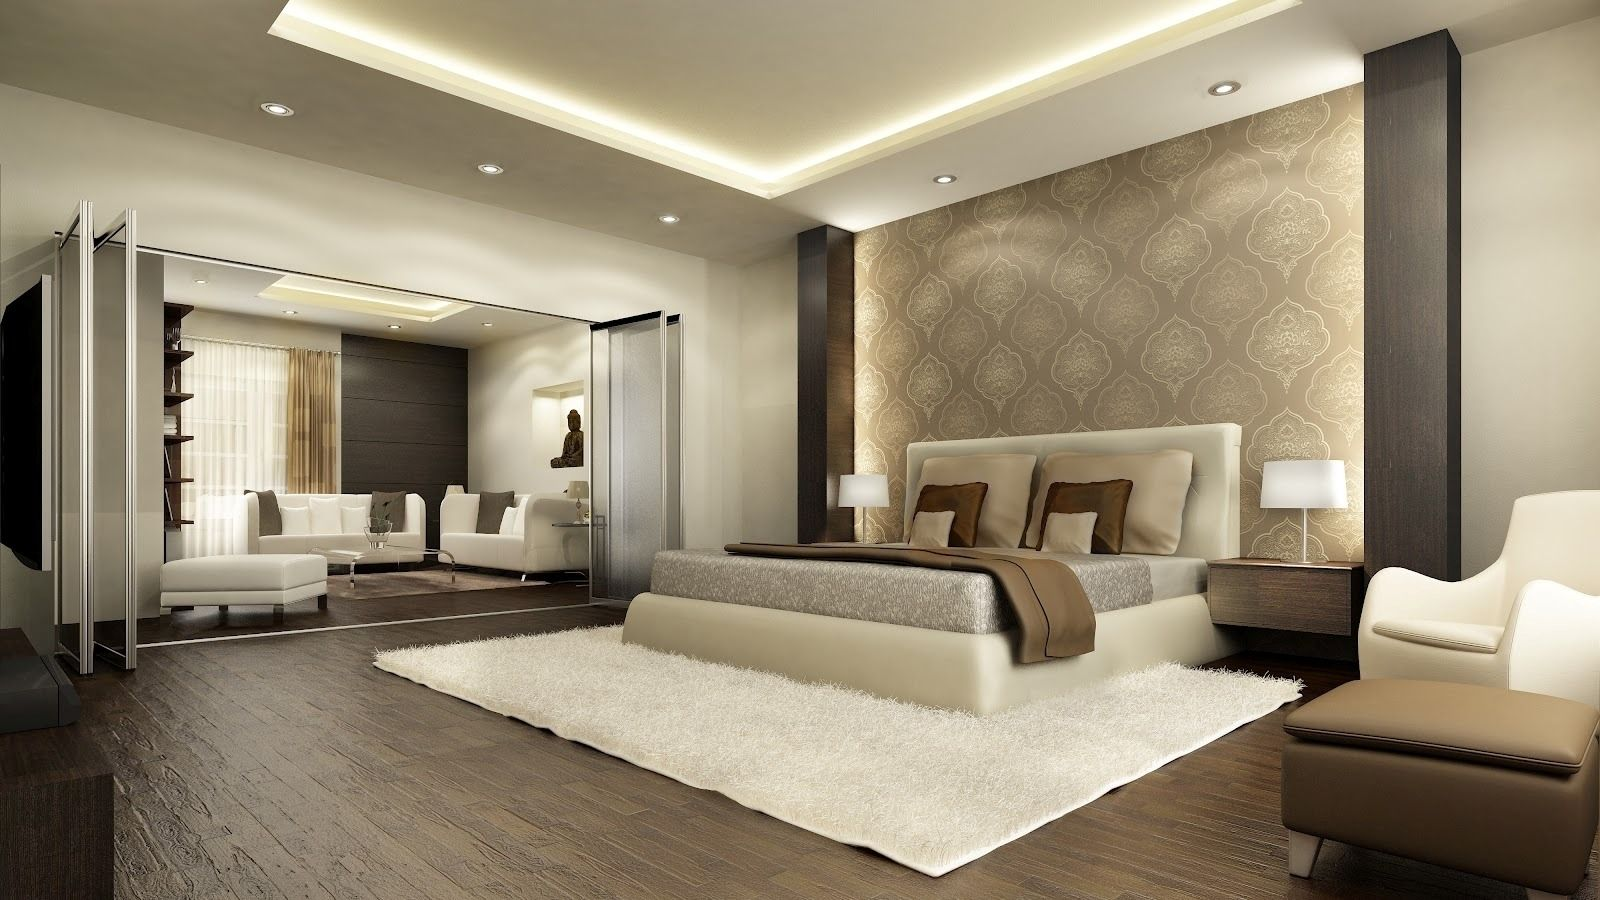 10 Modern Luxury Master Bedroom Designs For Your Home